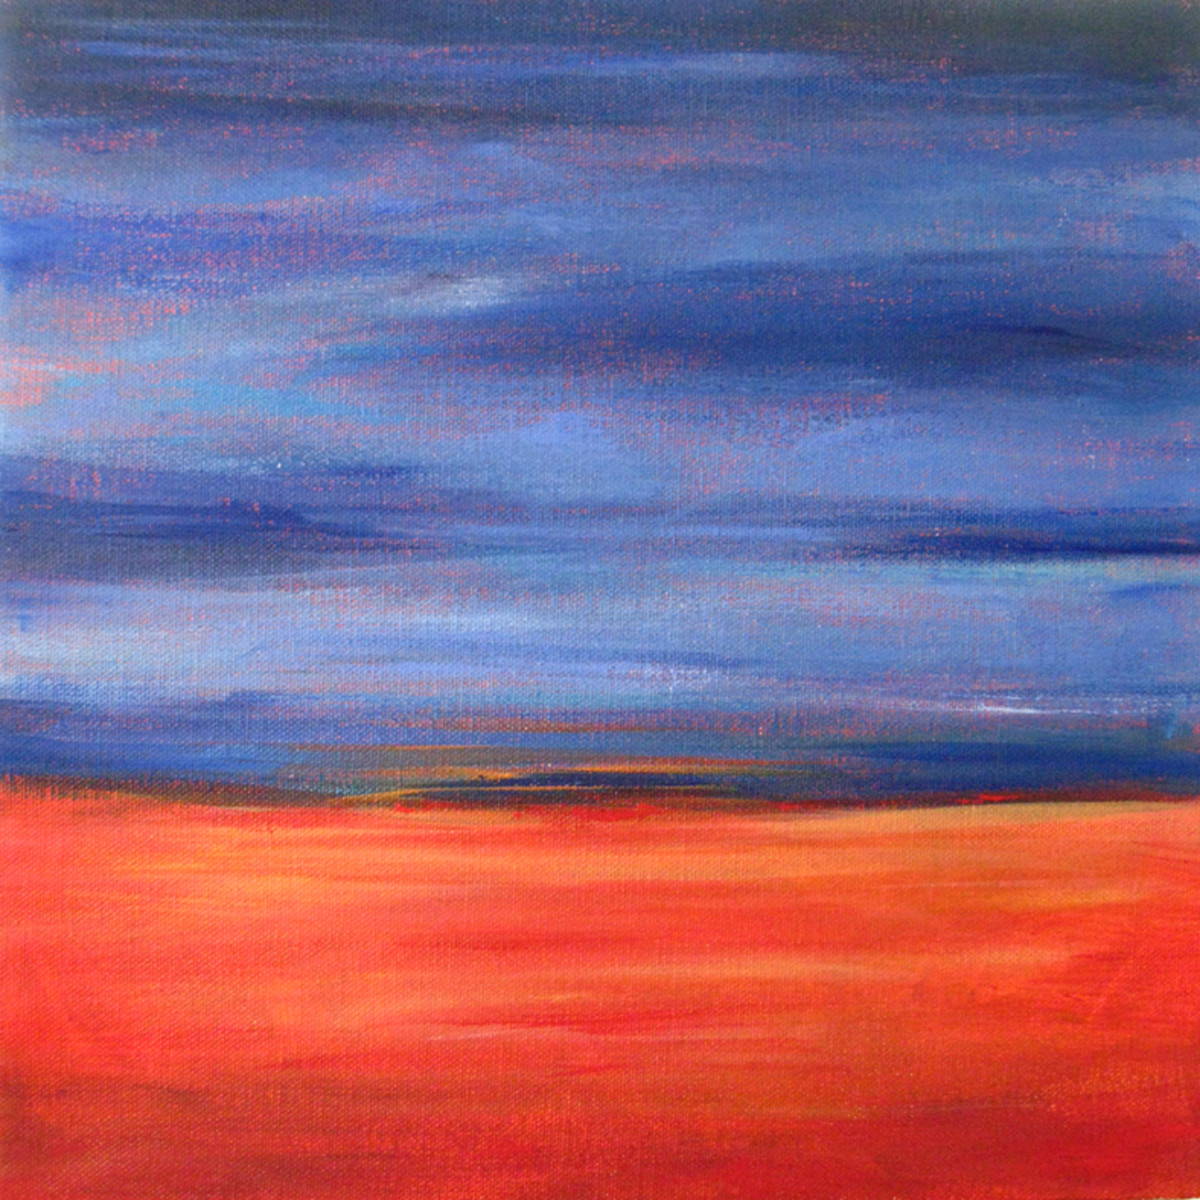 Abstract landscape -For the ground, I used Burnt Sienna, Raw Sienna, Hansa Yellow Light, Naphthol Red Medium, and Titanium White. For the sky, I used Ultramarine Blue, Cerulean Blue, and Titanium White.